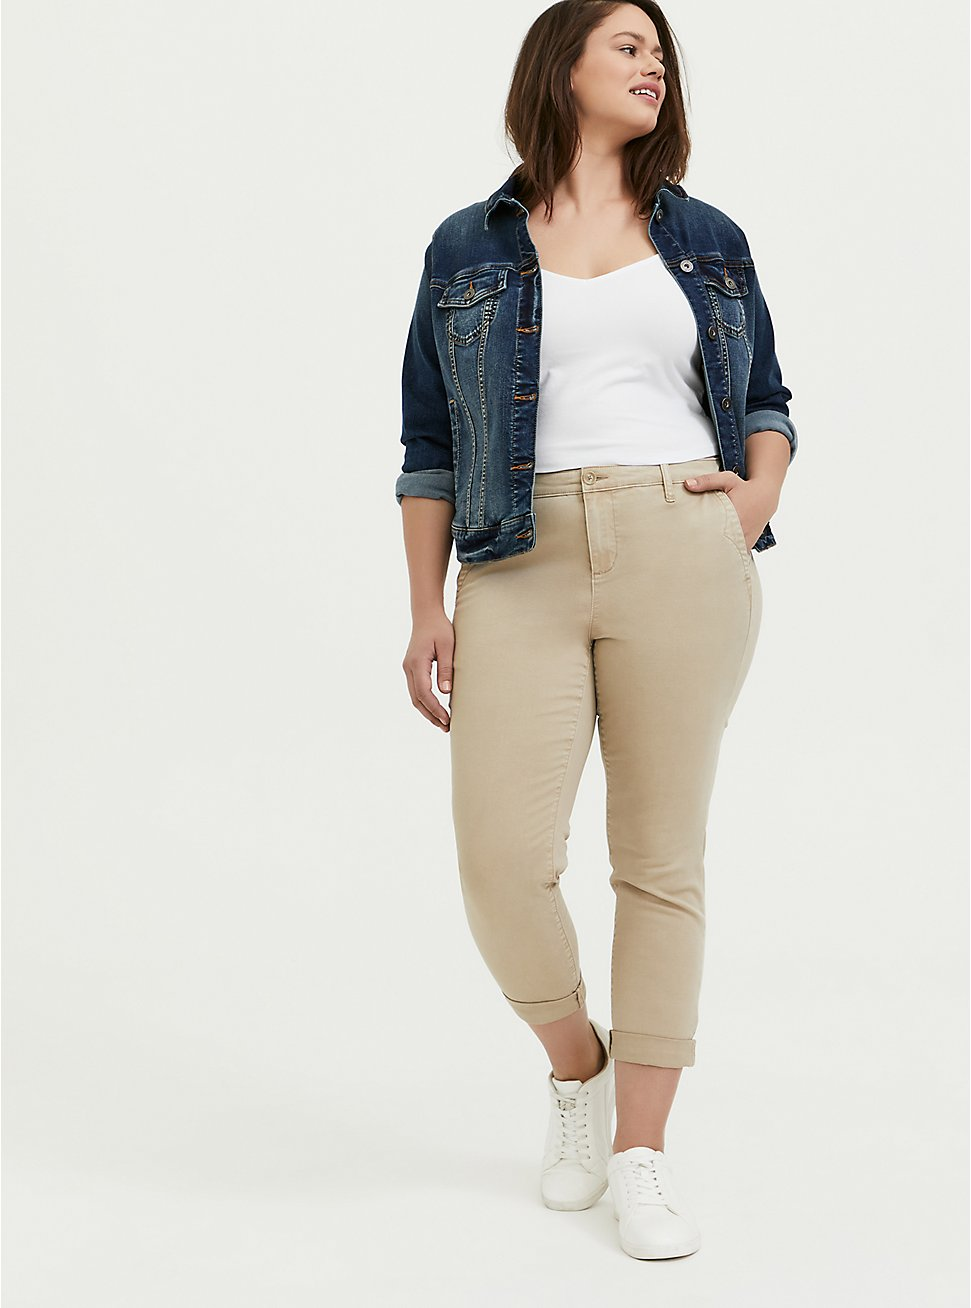 Plus Size Crop Chino Pant – Twill Beige , TAN/BEIGE, hi-res